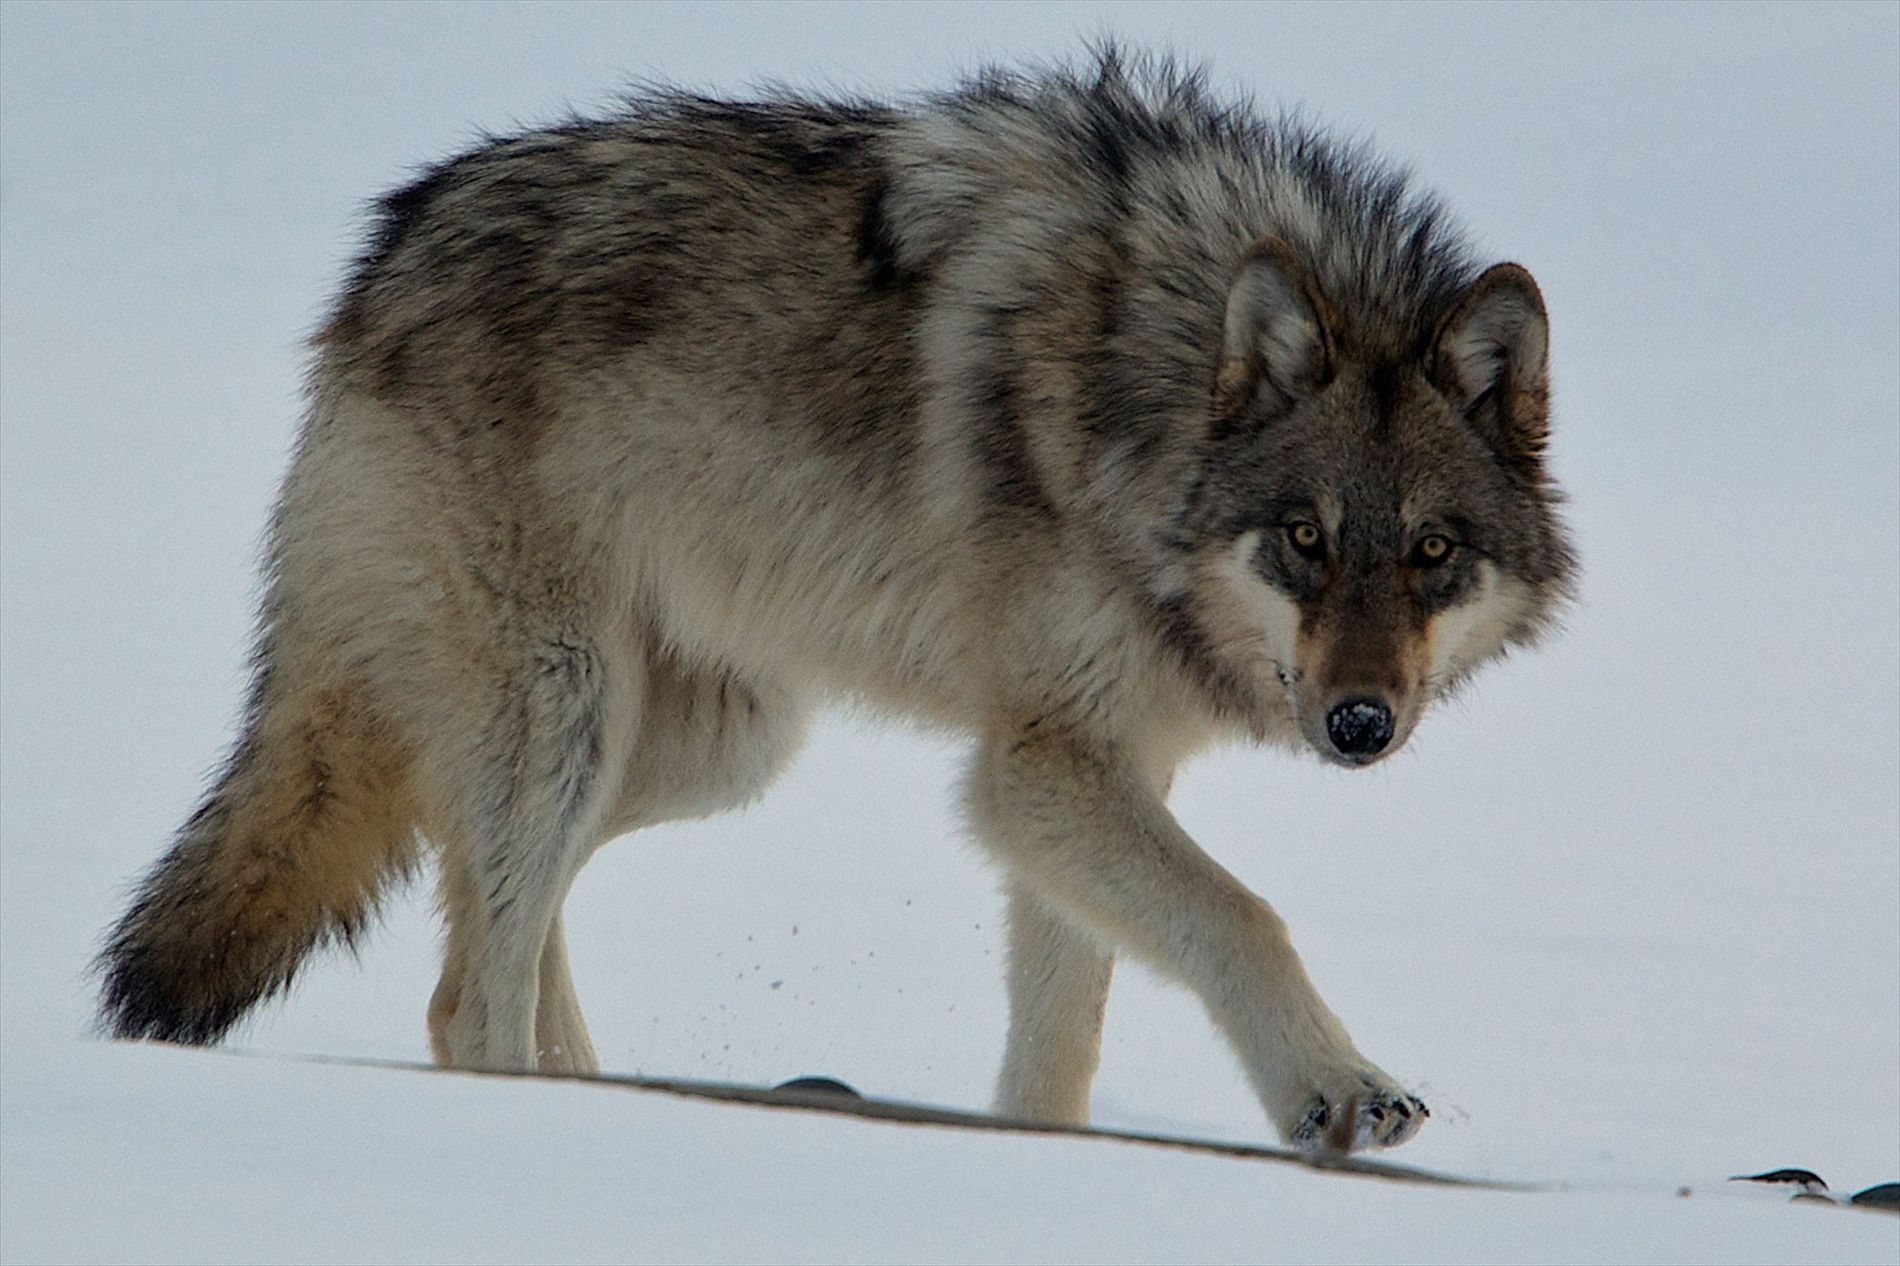 A young gray wolf stalks through the snow. Wolves were reintroduced to Yellowstone National Park in ...